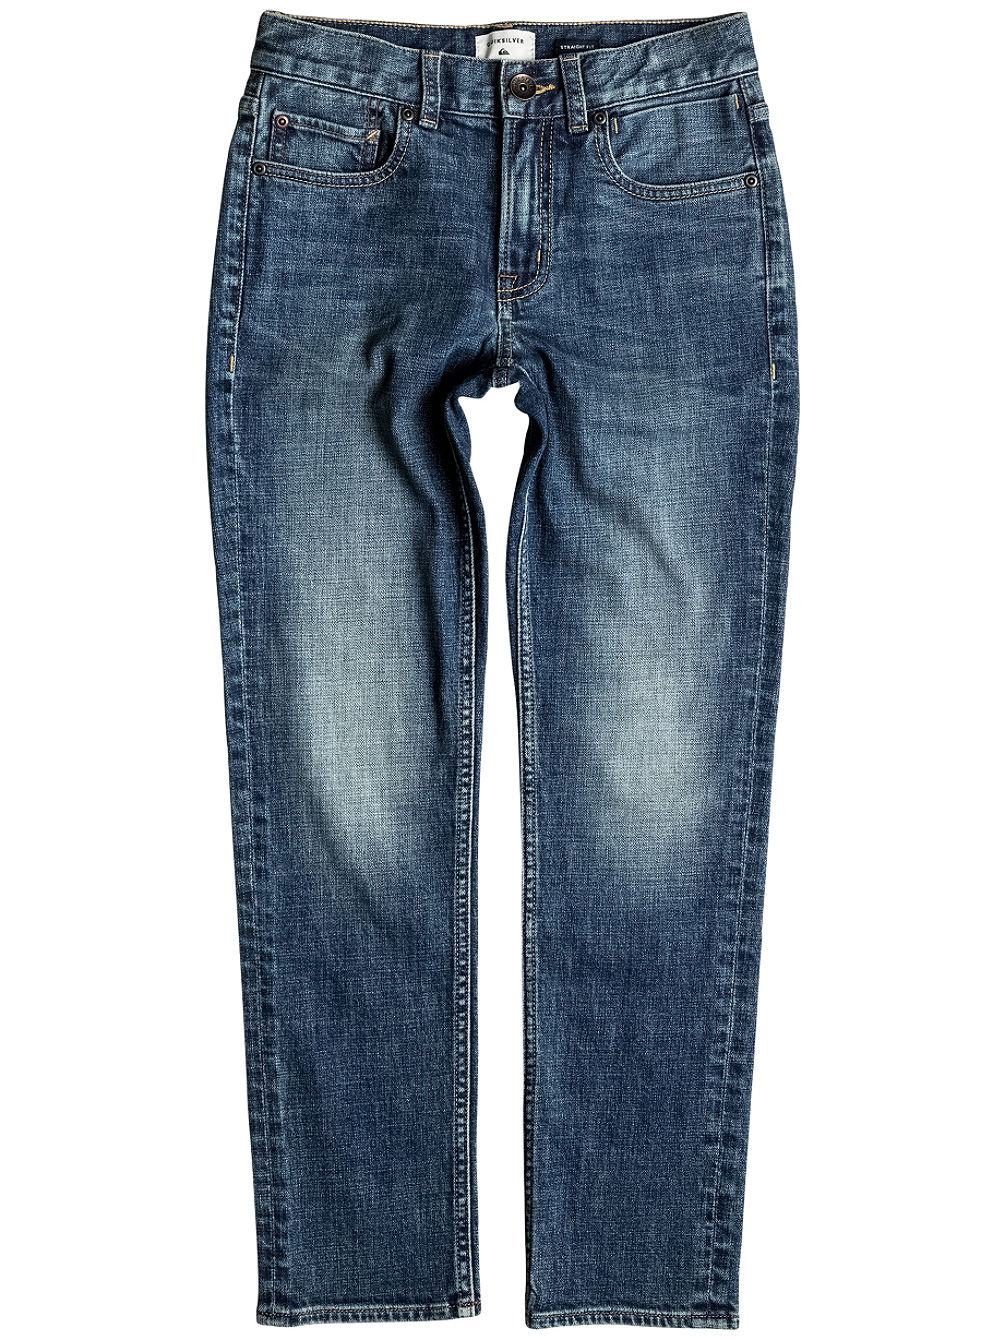 Revolver Middle Sky Aw Jeans Boys